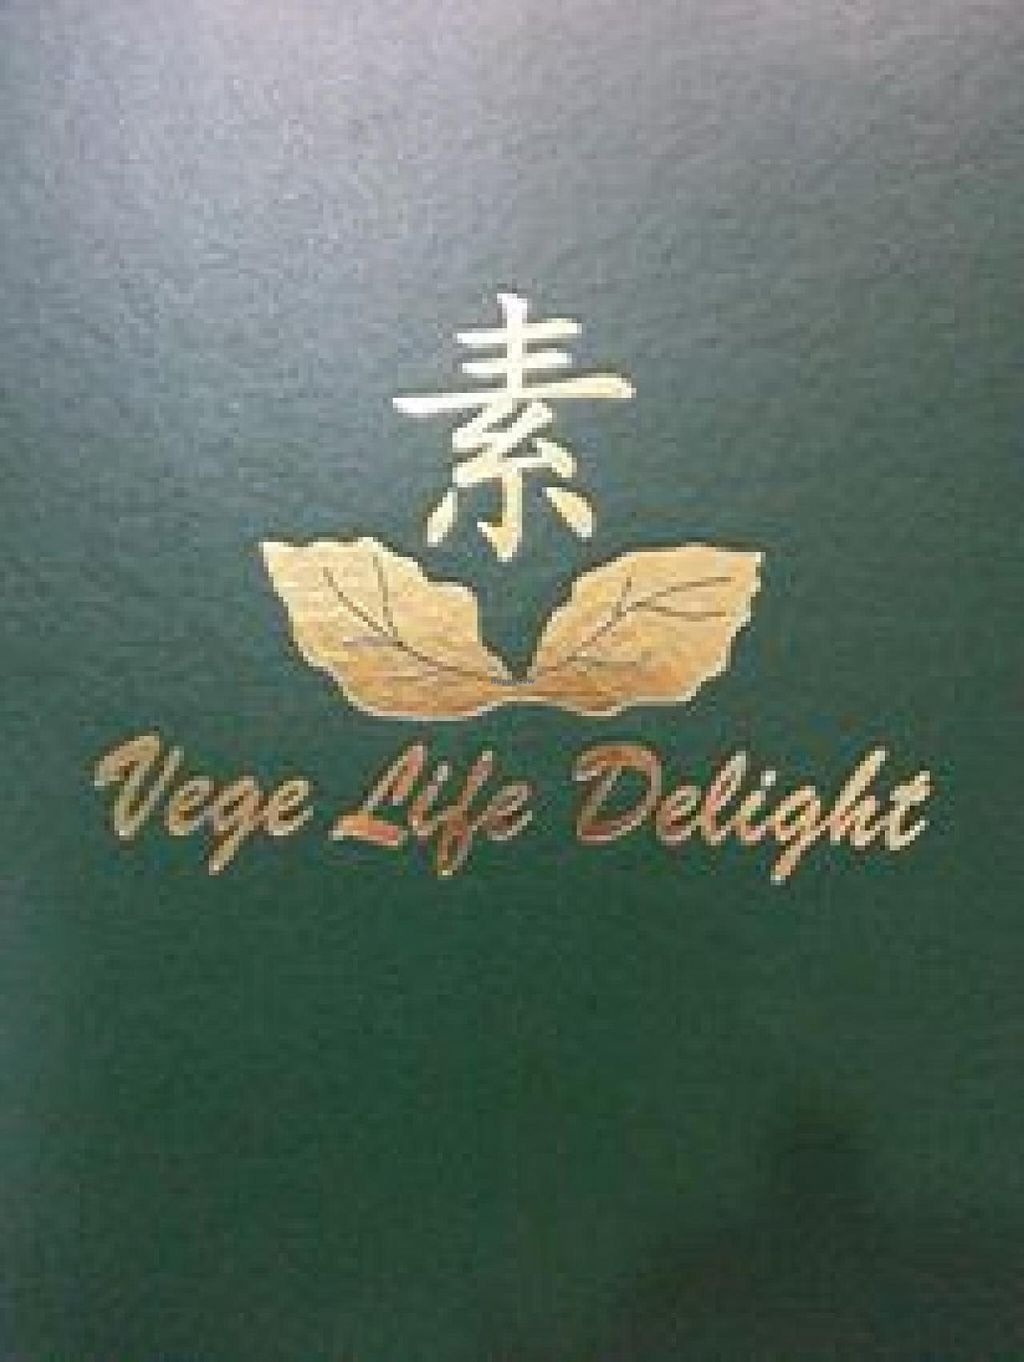 """Photo of Vege Life Delight  by <a href=""""/members/profile/community"""">community</a> <br/>Logo <br/> March 12, 2014  - <a href='/contact/abuse/image/45435/65778'>Report</a>"""